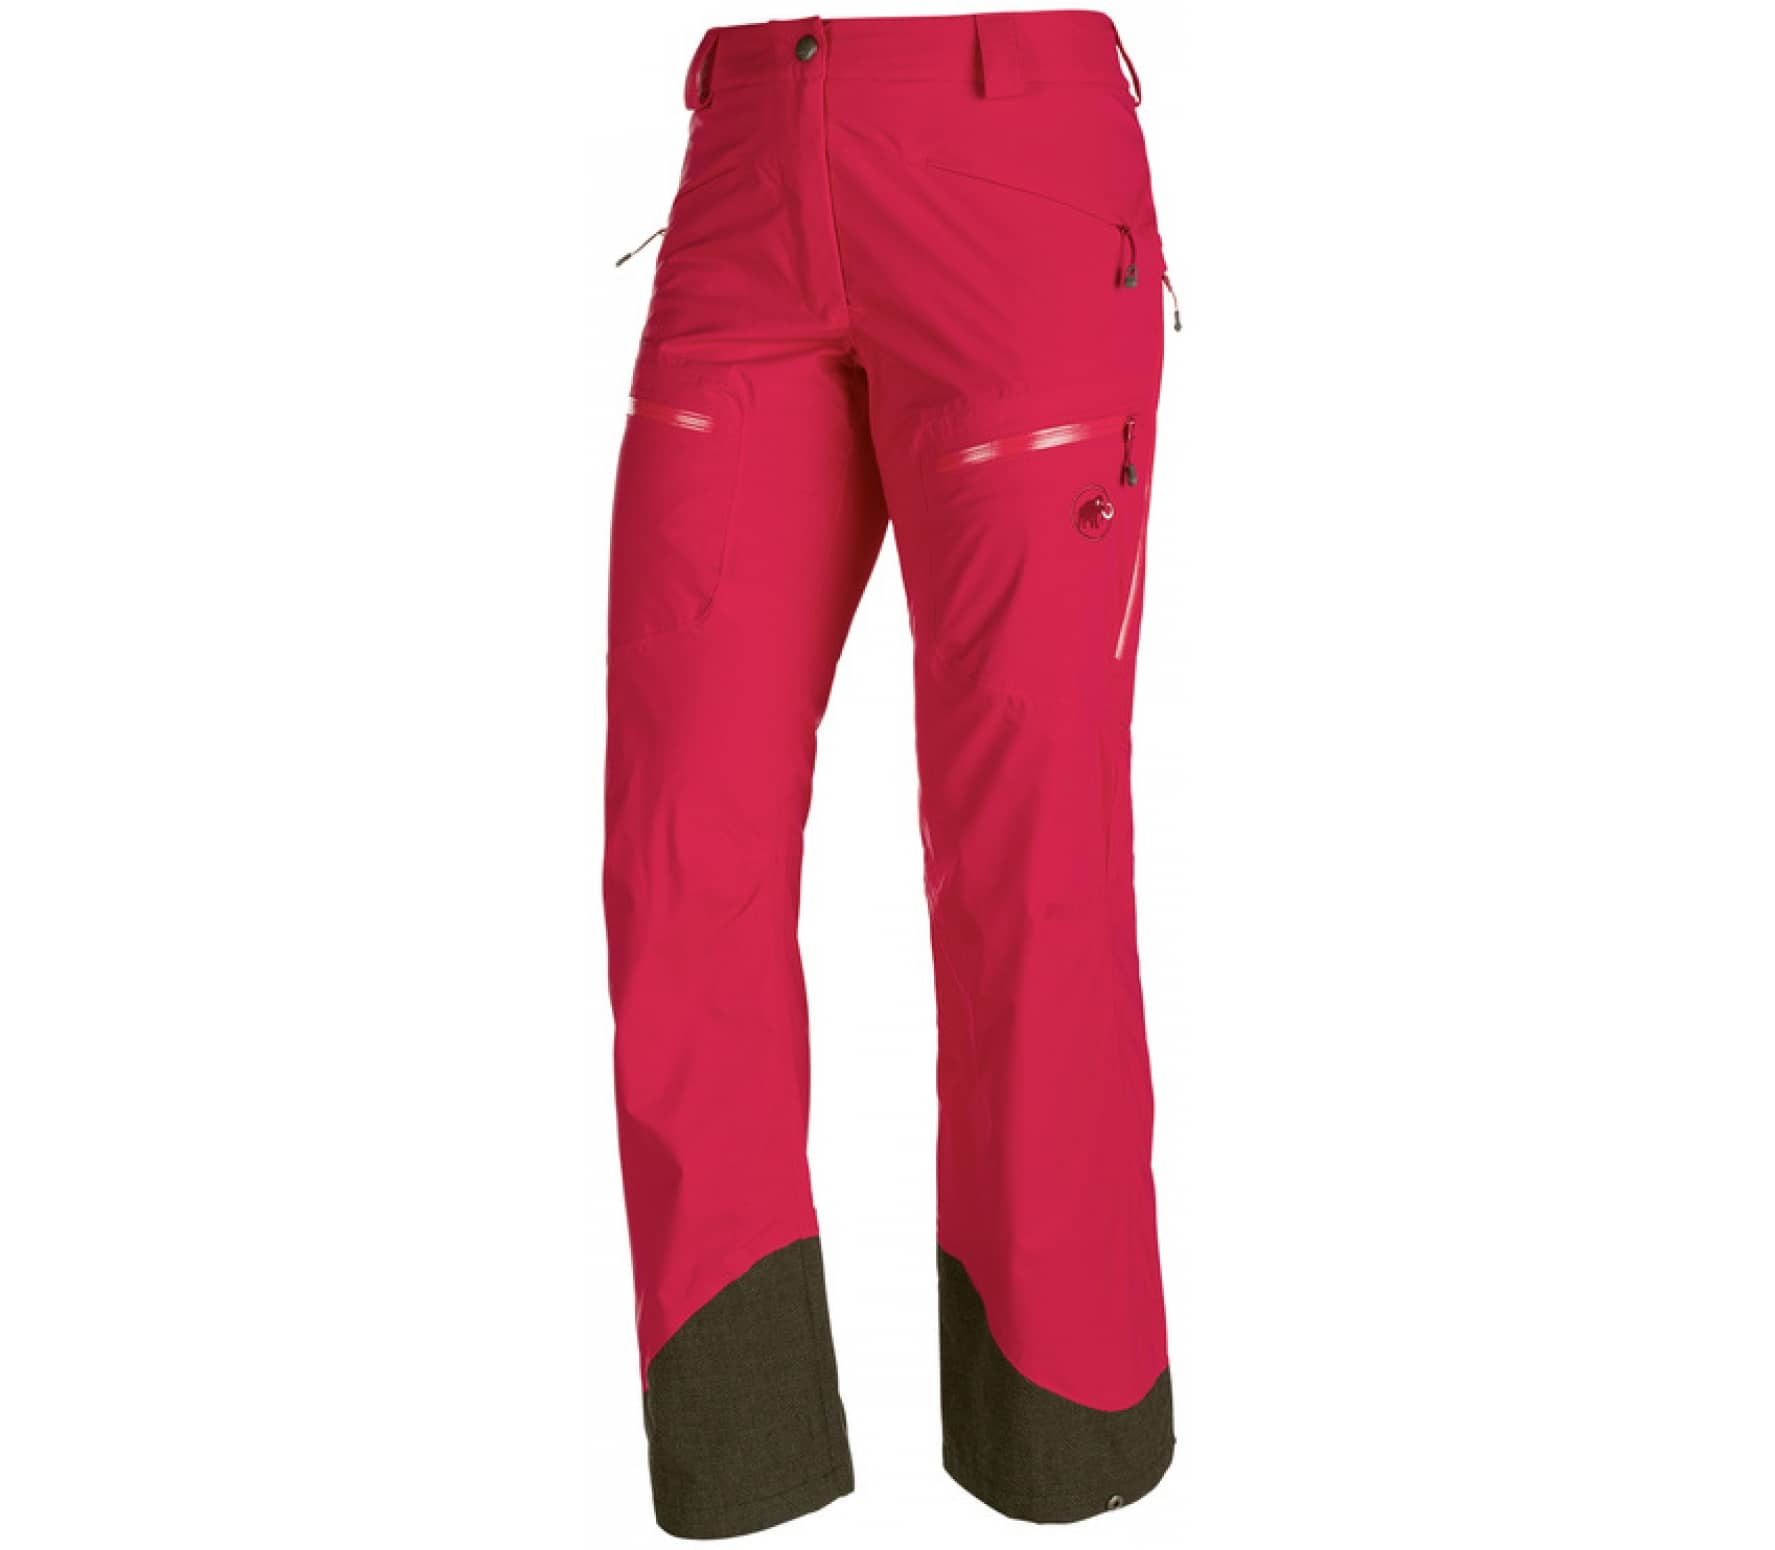 mammut stoney hs damen skihose pink im online shop von keller sports kaufen. Black Bedroom Furniture Sets. Home Design Ideas